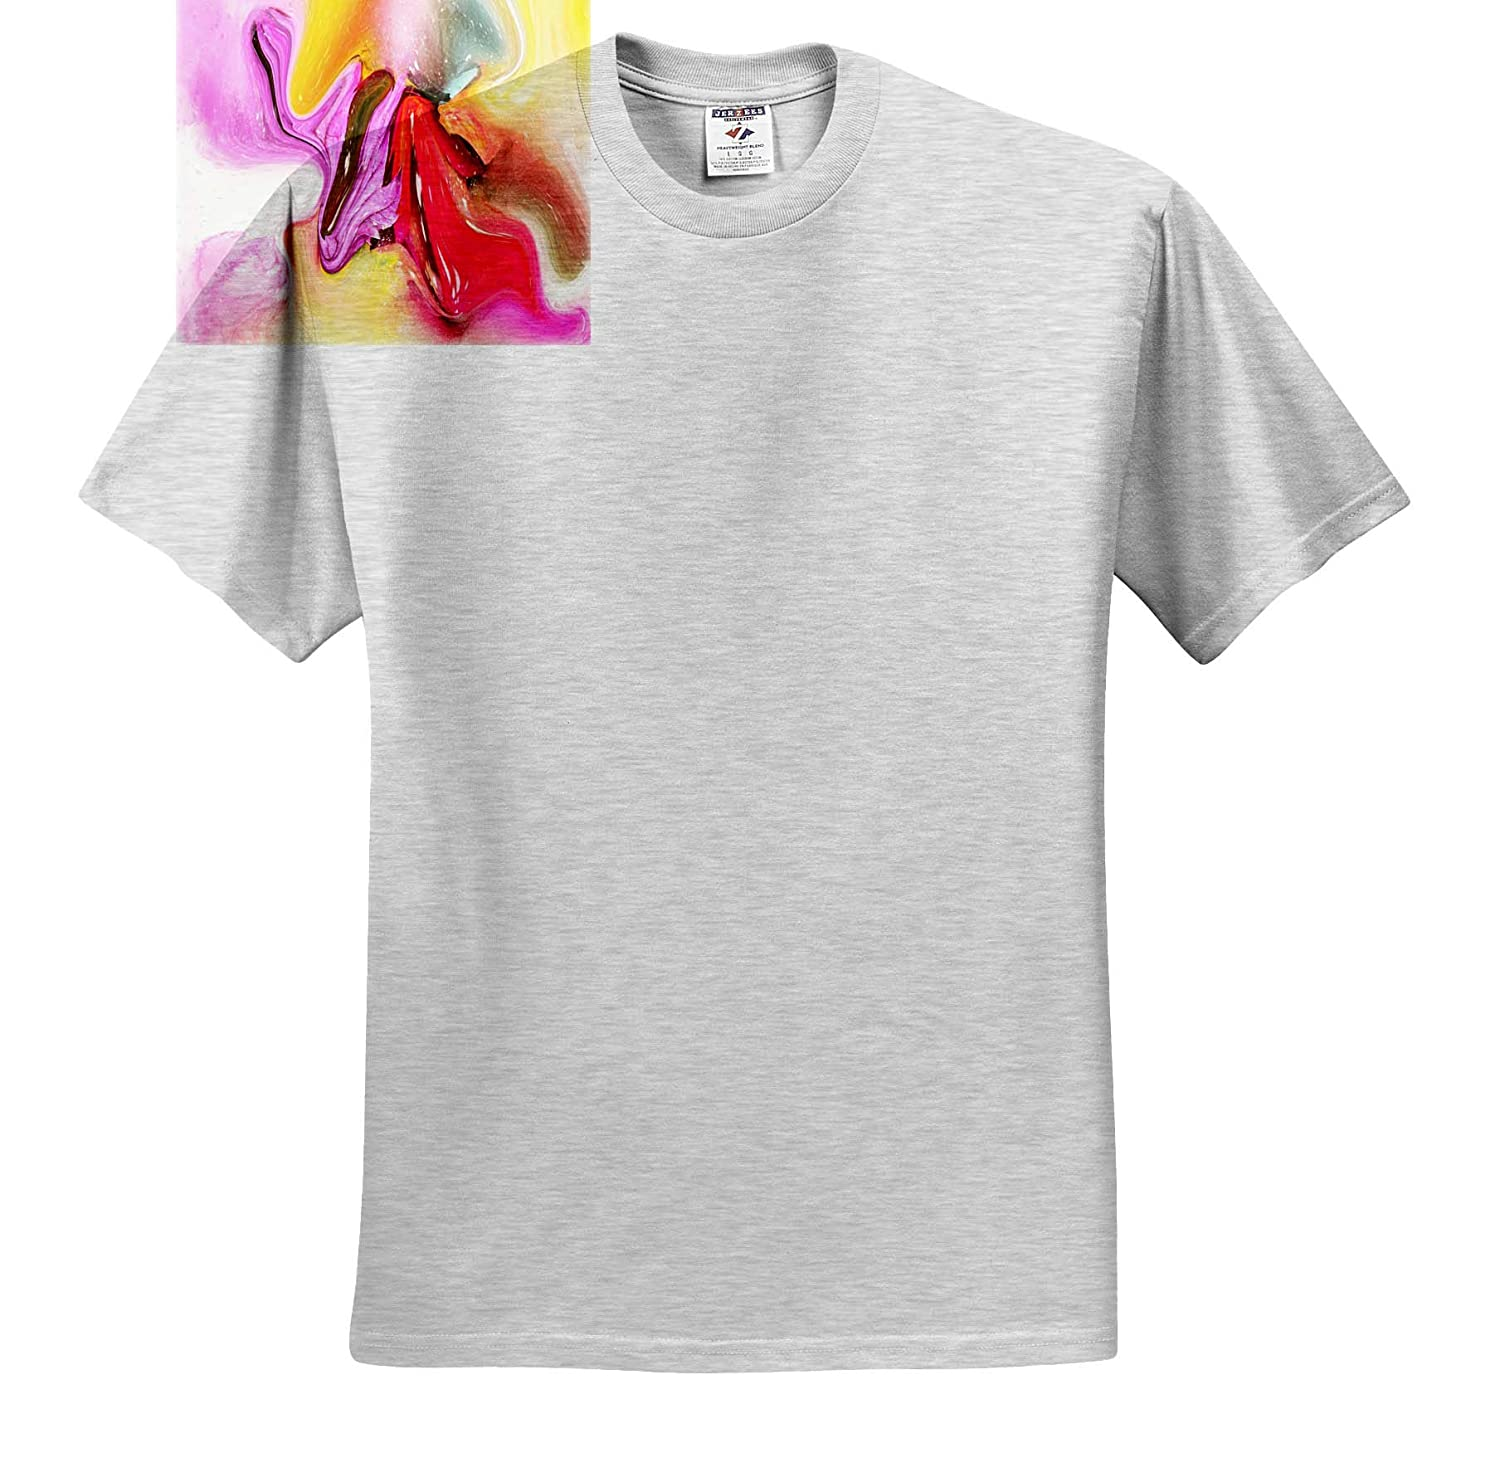 3dRose Lens Art by Florene Digital Painting T-Shirts Image of in Your Face Pink and Yellow Digital Painting